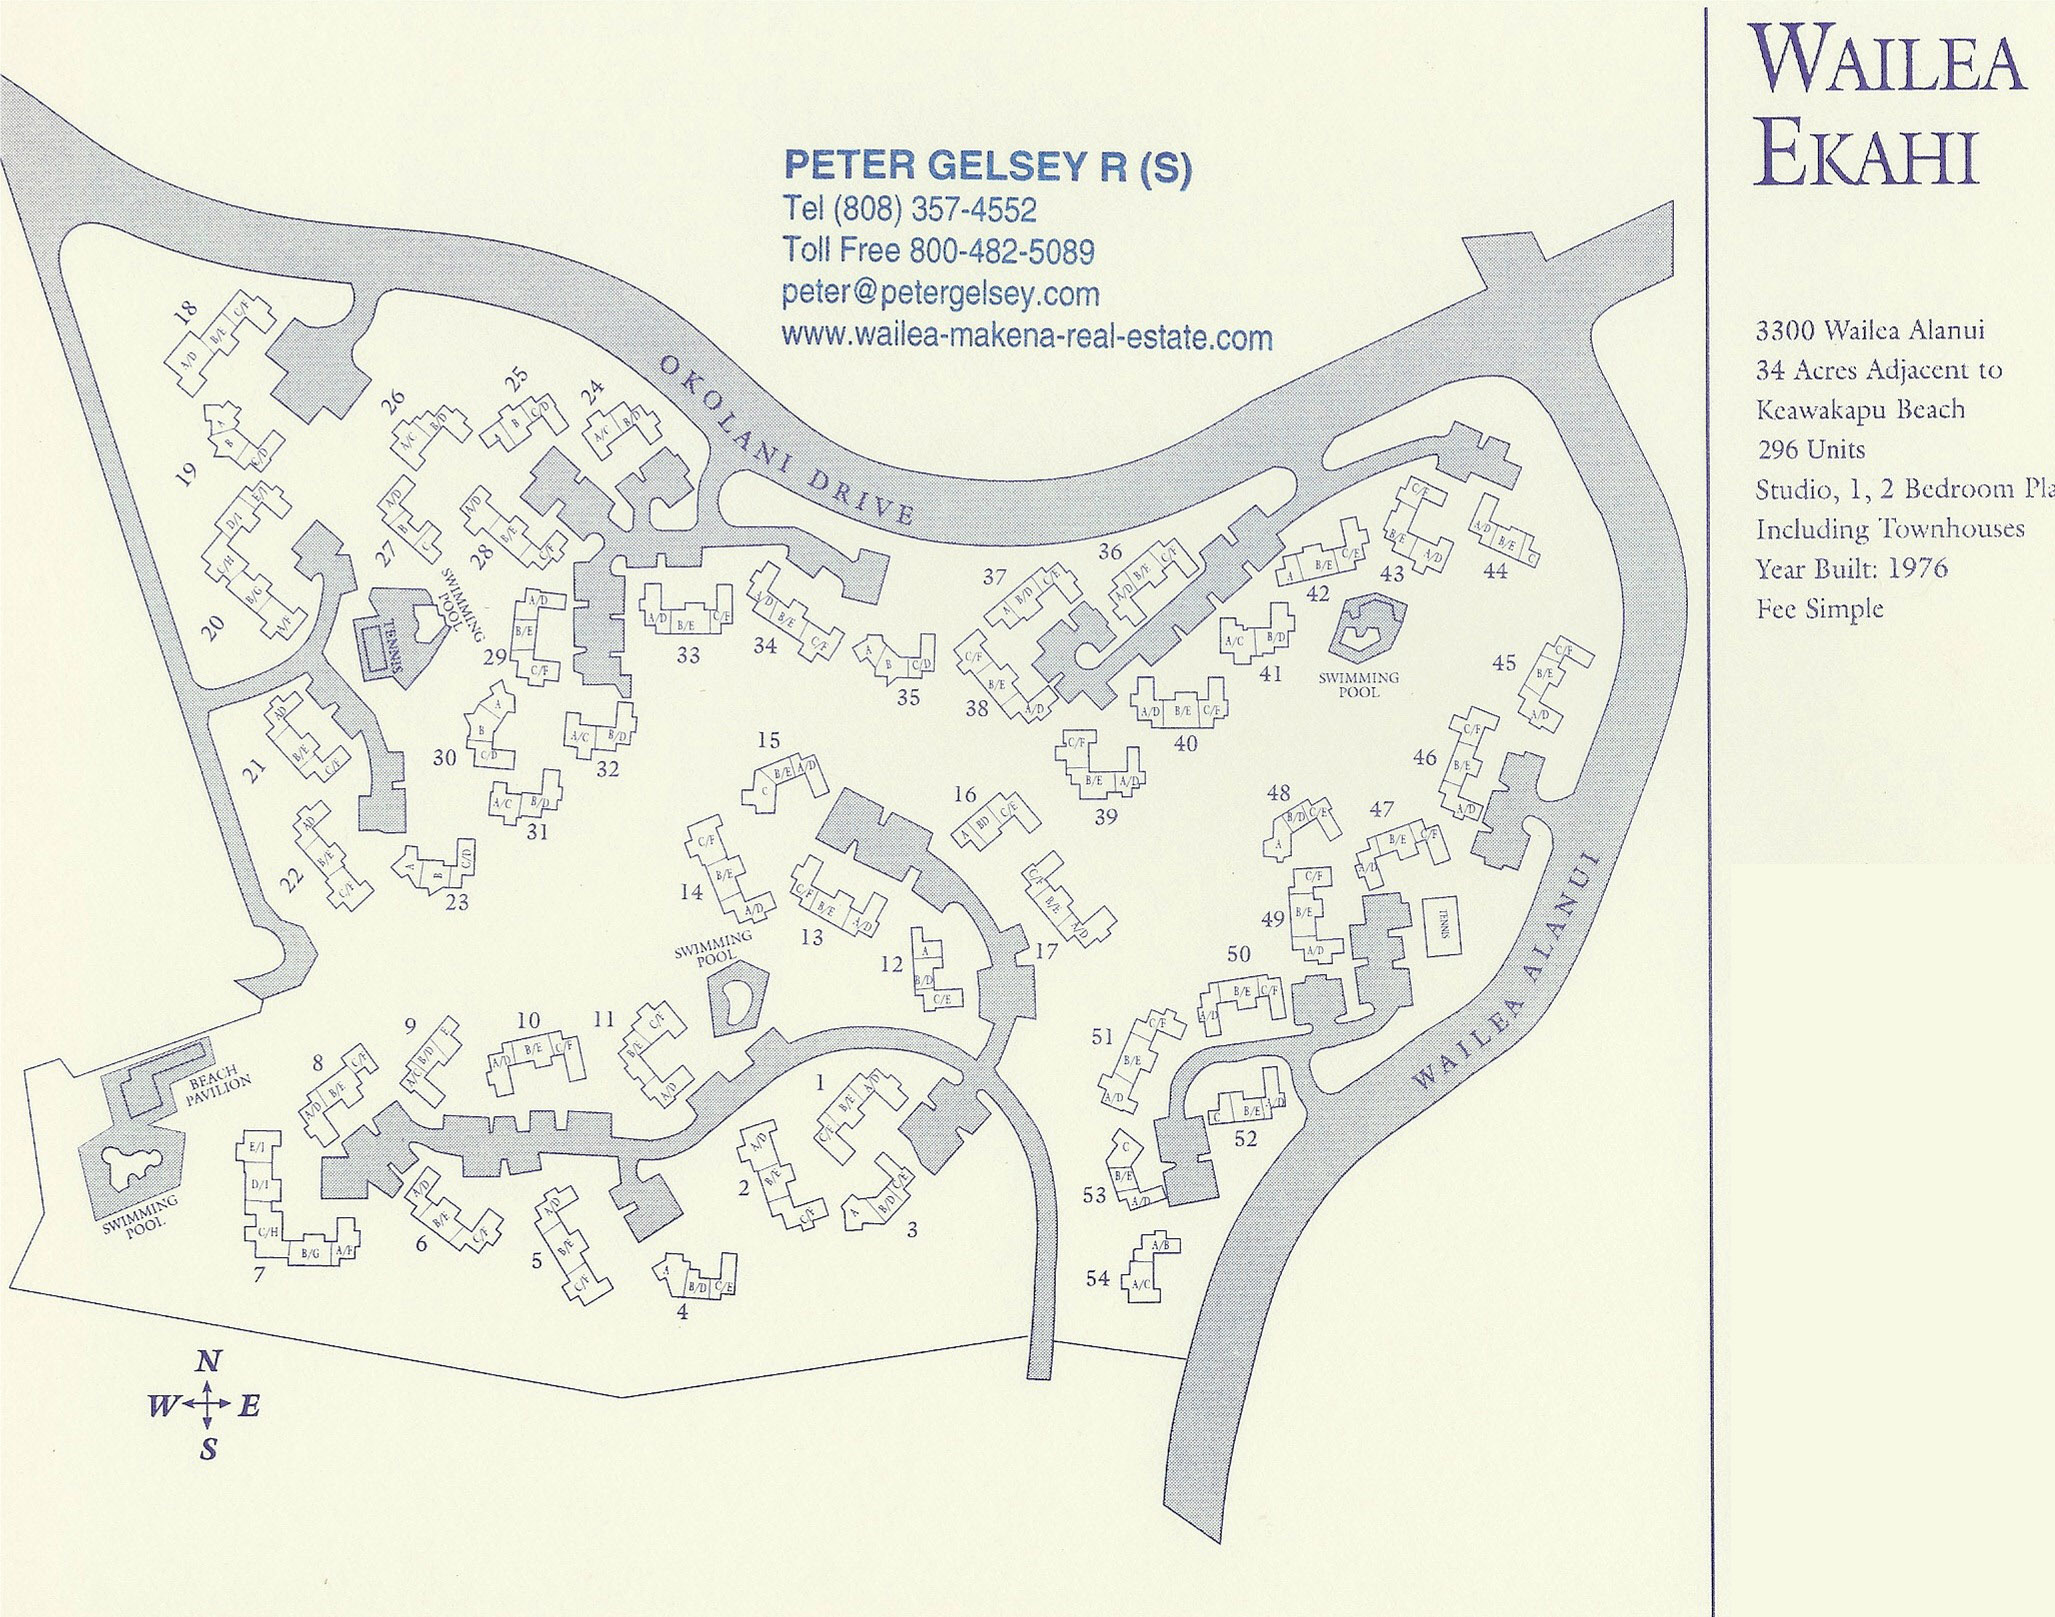 Maps Site Plans Wailea Makena Real Estate Inc